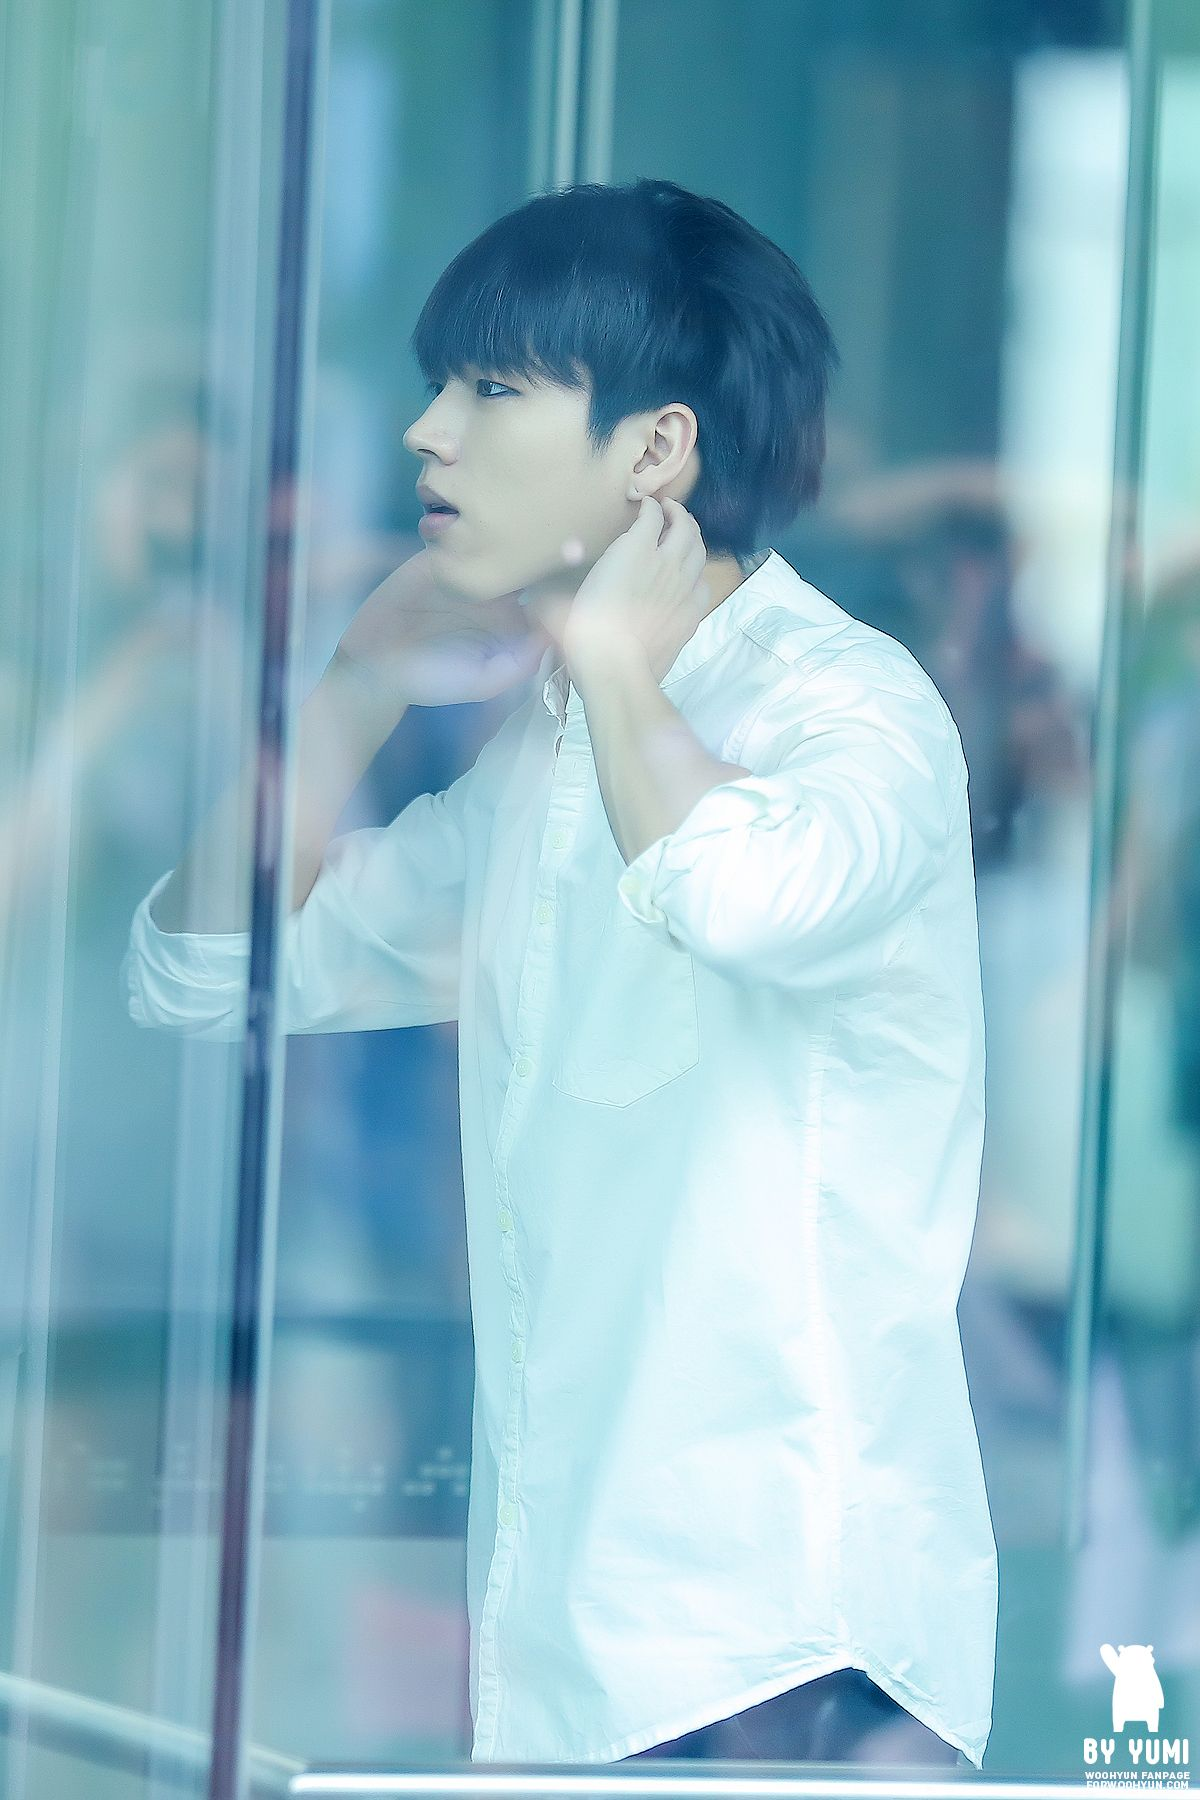 Male Idol Who Looks Good With Jeans And White Shirt Ranking 1